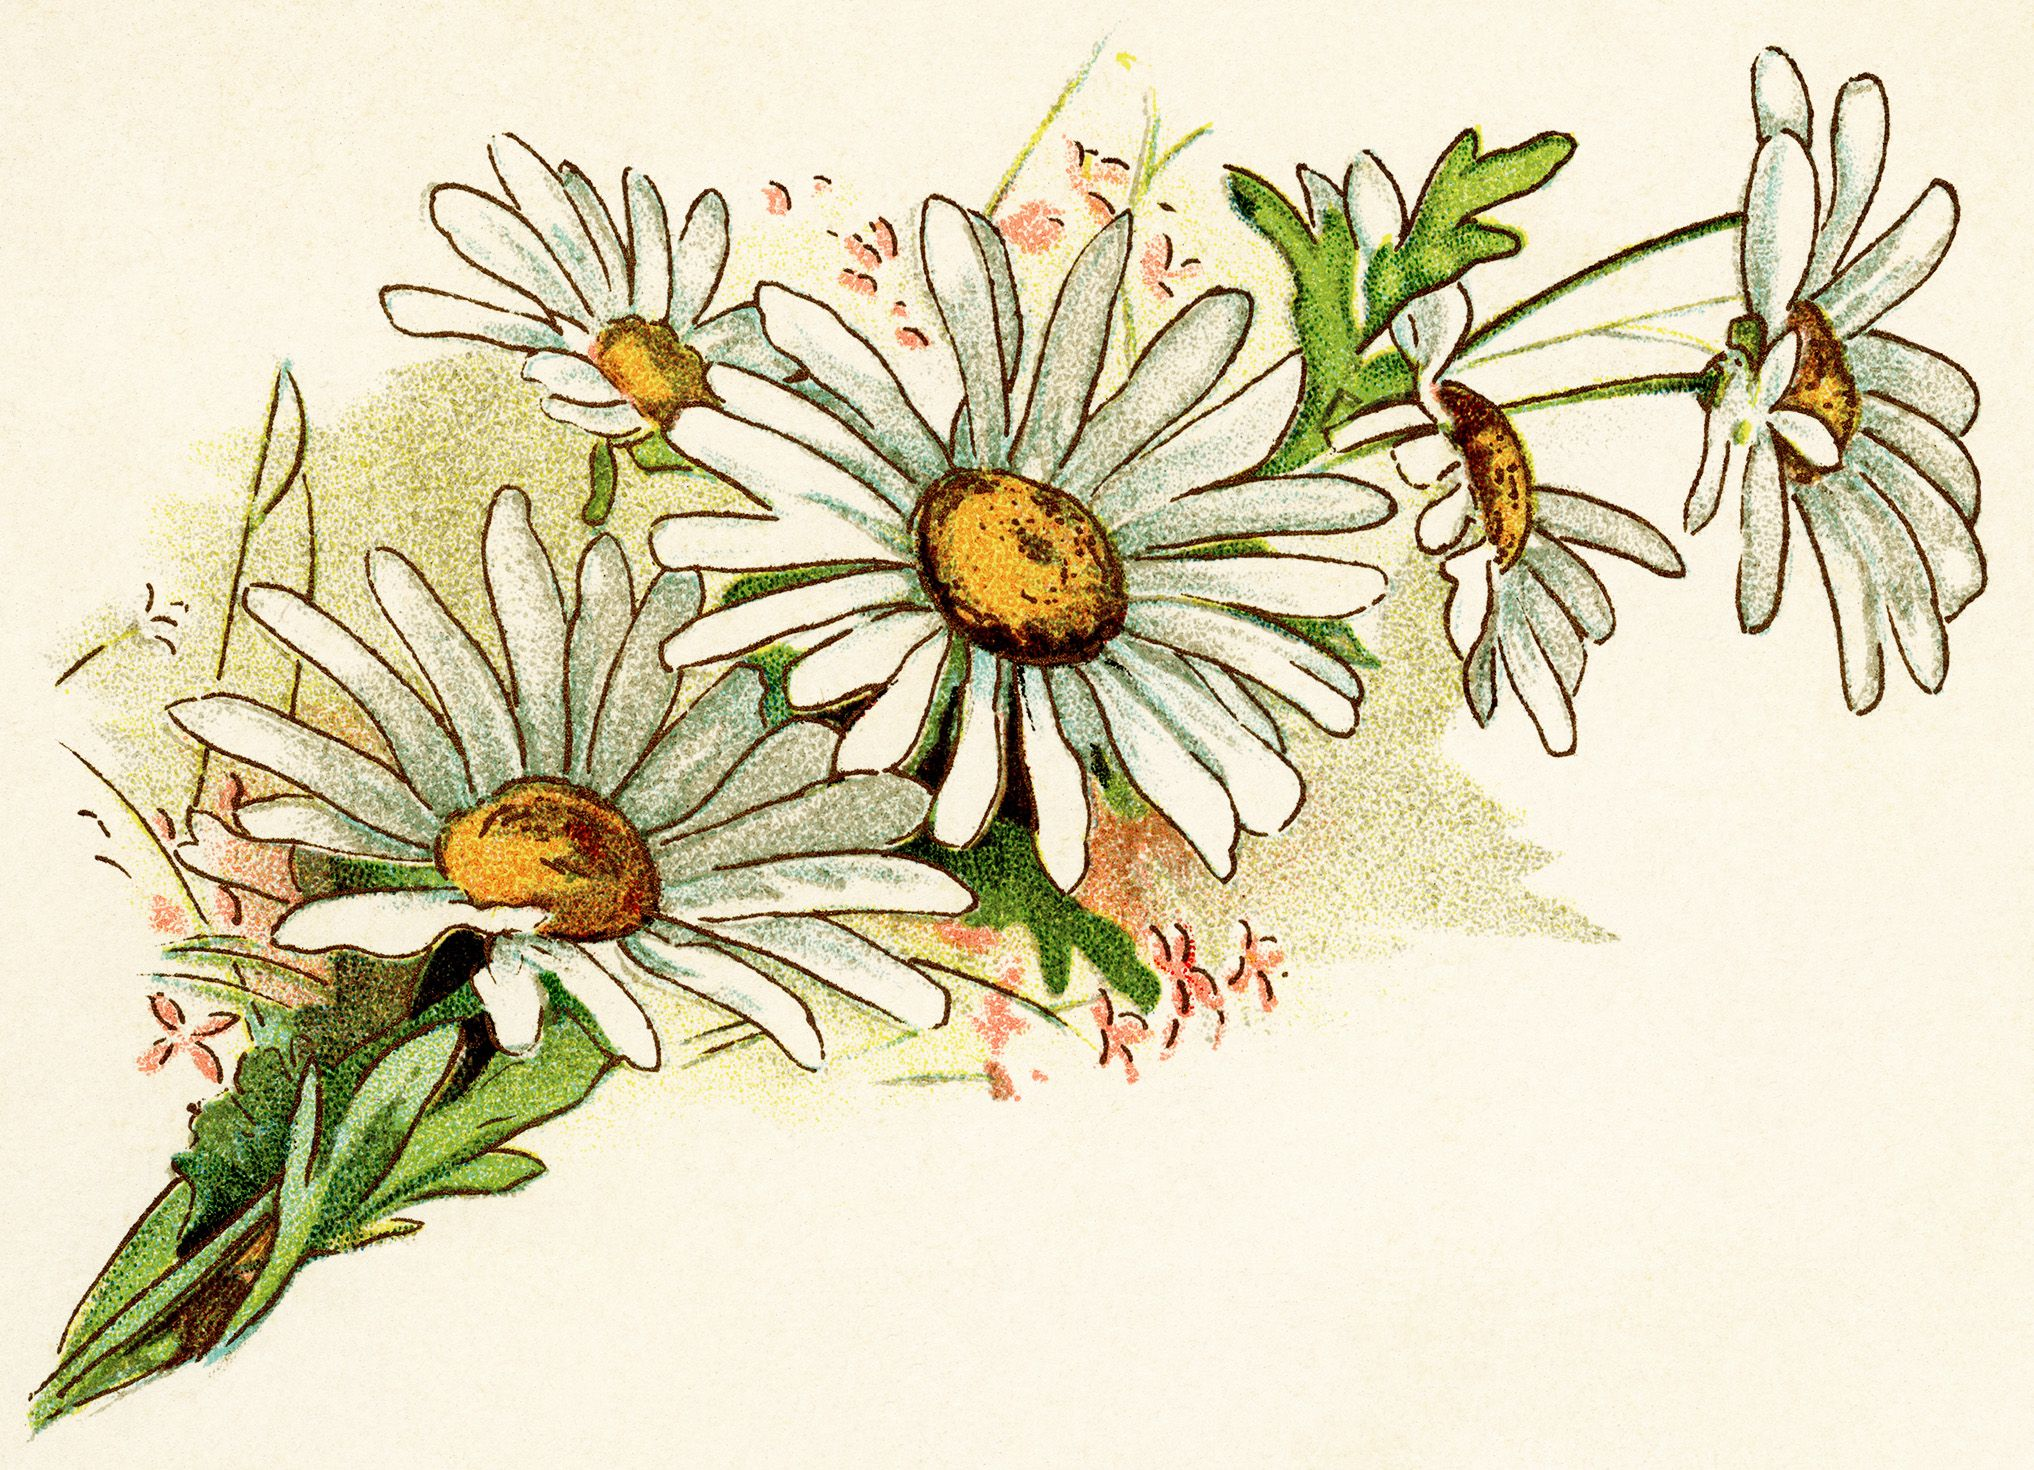 Vintage daisy image free digital floral graphics cluster of vintage daisy image free digital floral graphics cluster of daisies illustration old fashioned daisy clipart bouquet of daisies printable izmirmasajfo